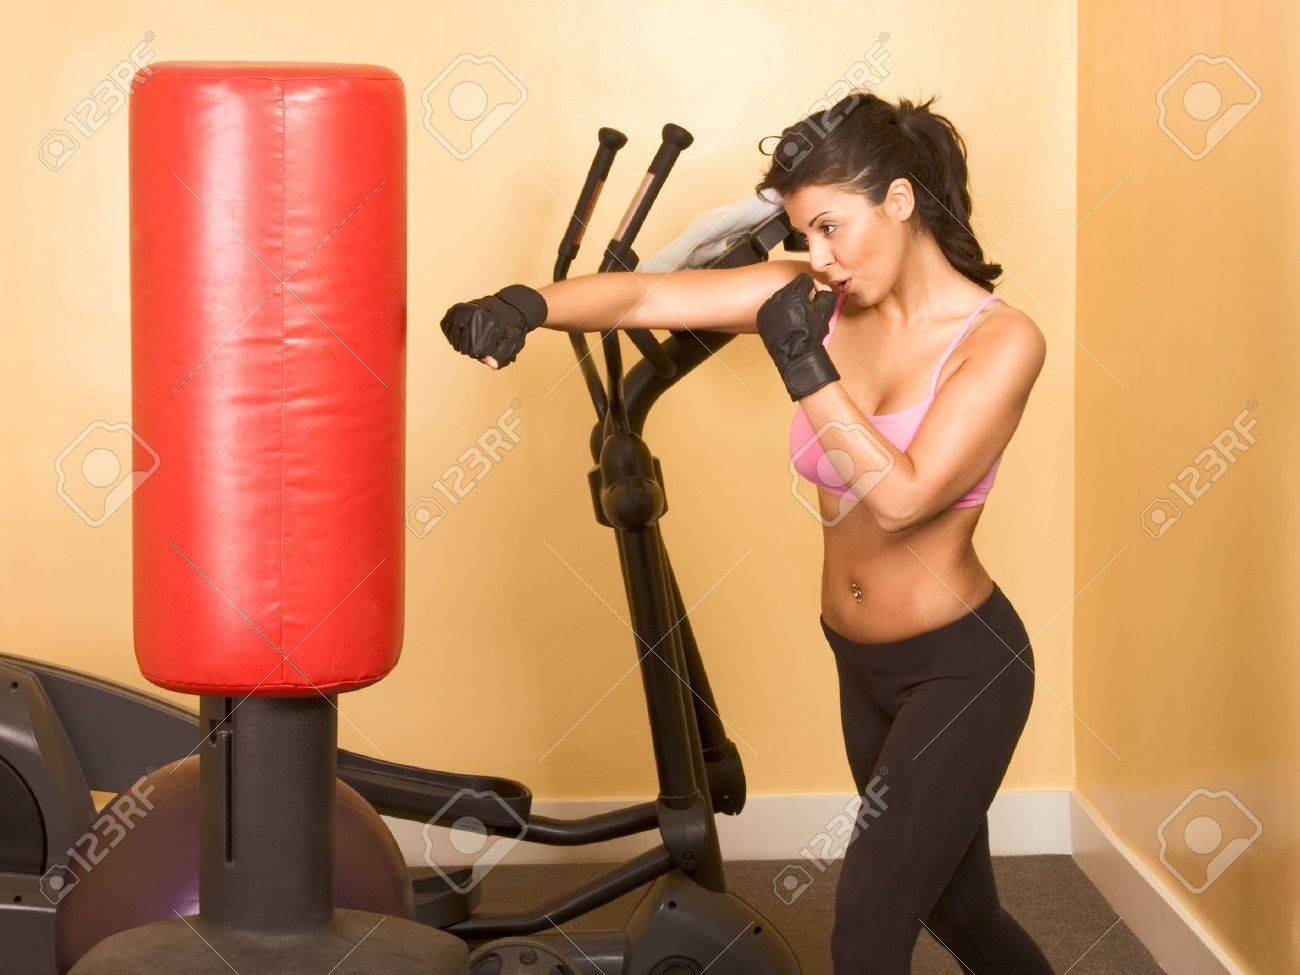 Attractive woman kickboxing using red punching bag - 3249043